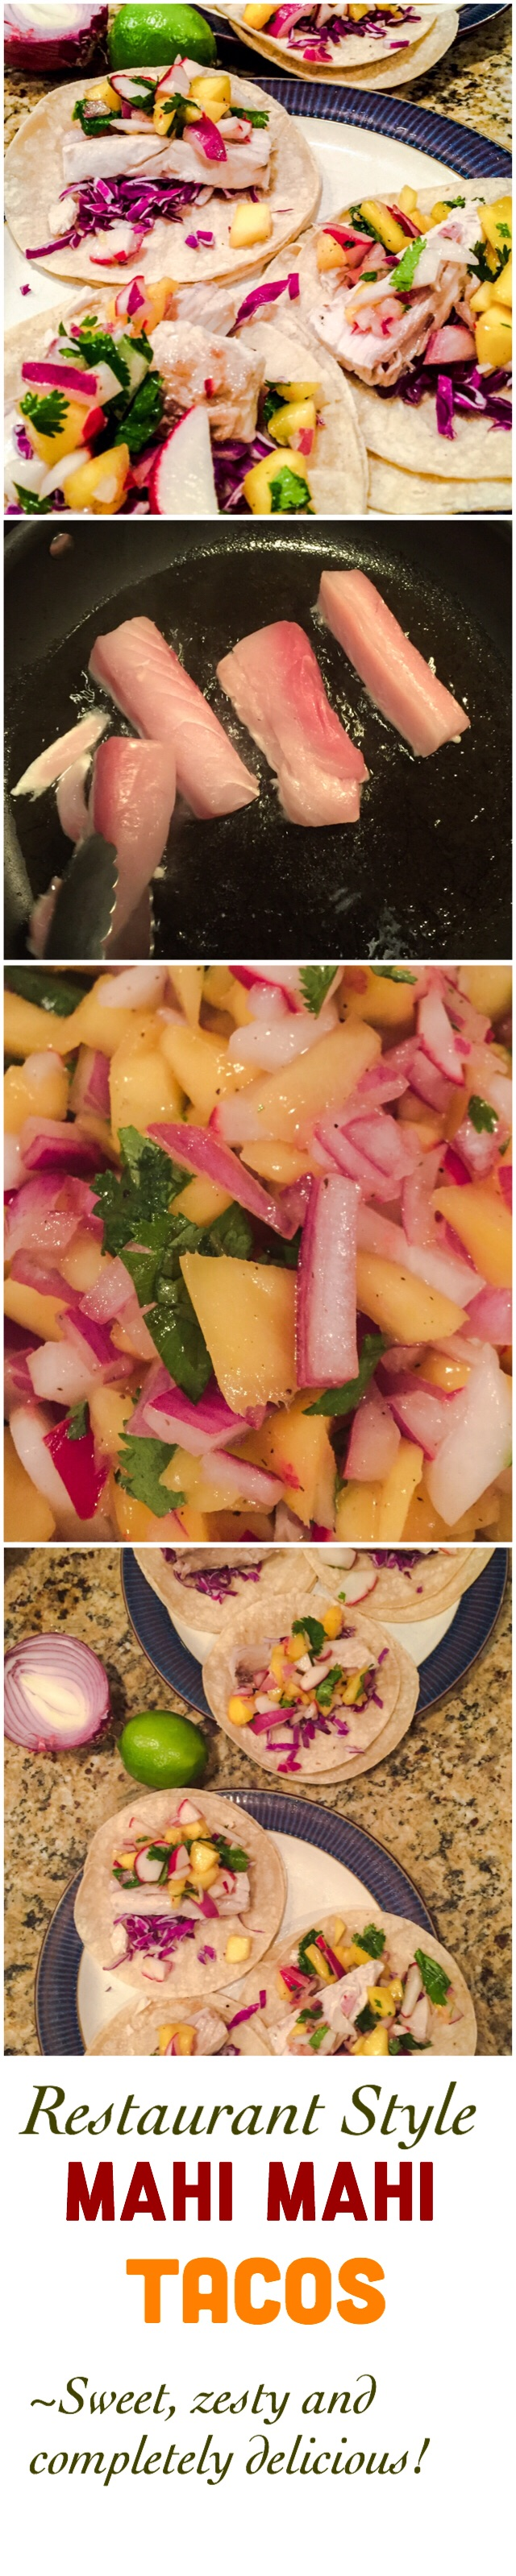 Fish tacos! Mahi Mahi with a mango salsa. Such a yummy recipe! Perfect for the summer weather!